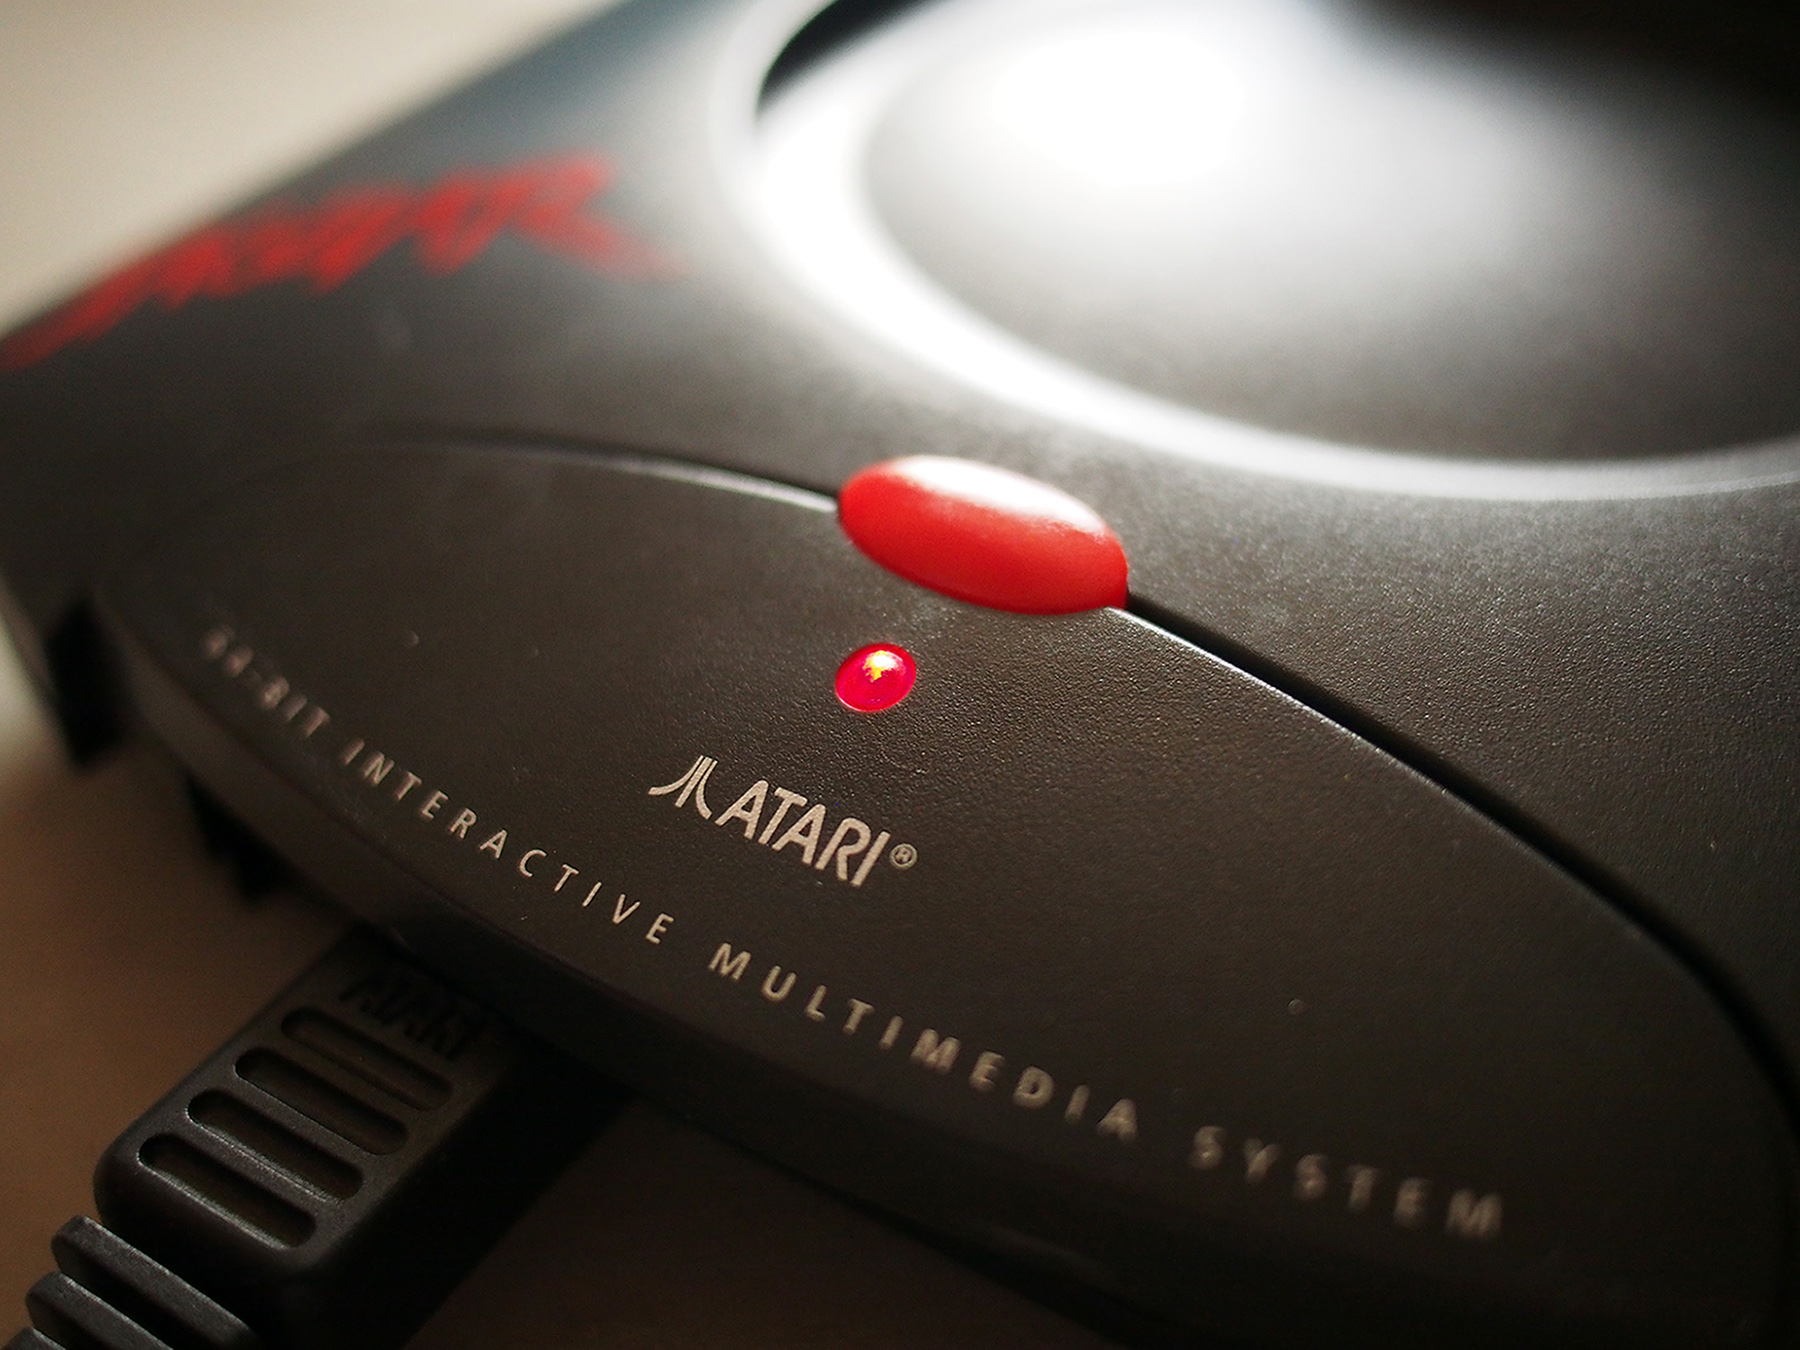 The Atari Jaguar 64-bit interactive multimedia system.